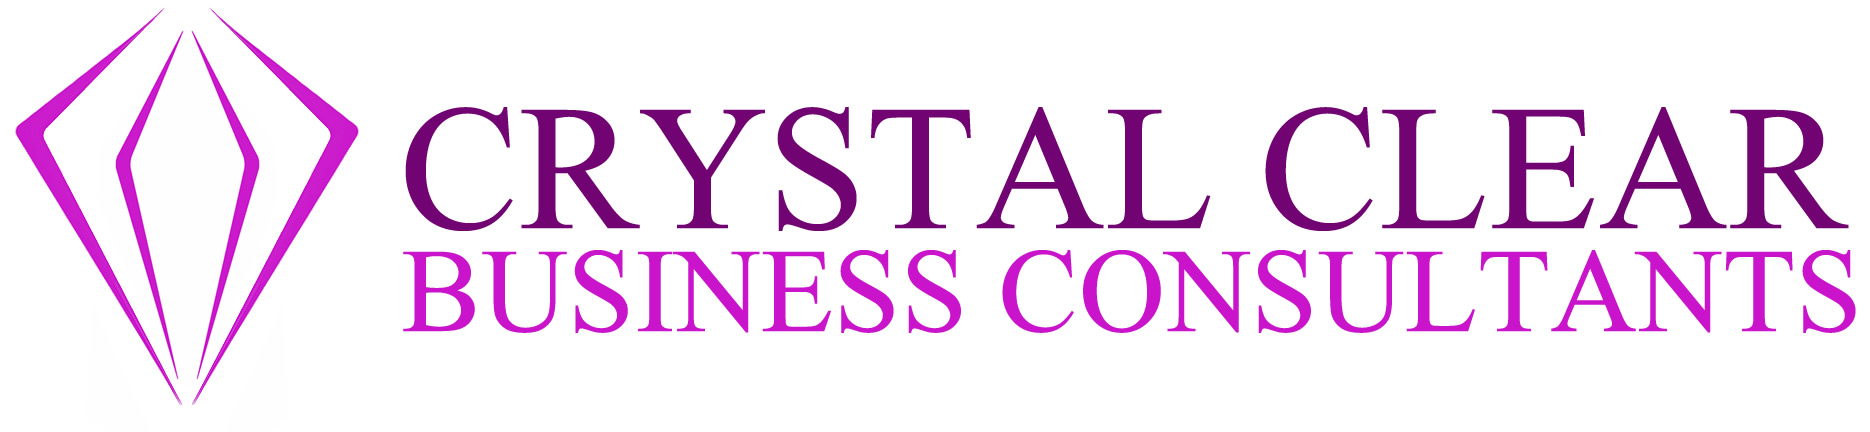 Crystal Clear Business Consultants